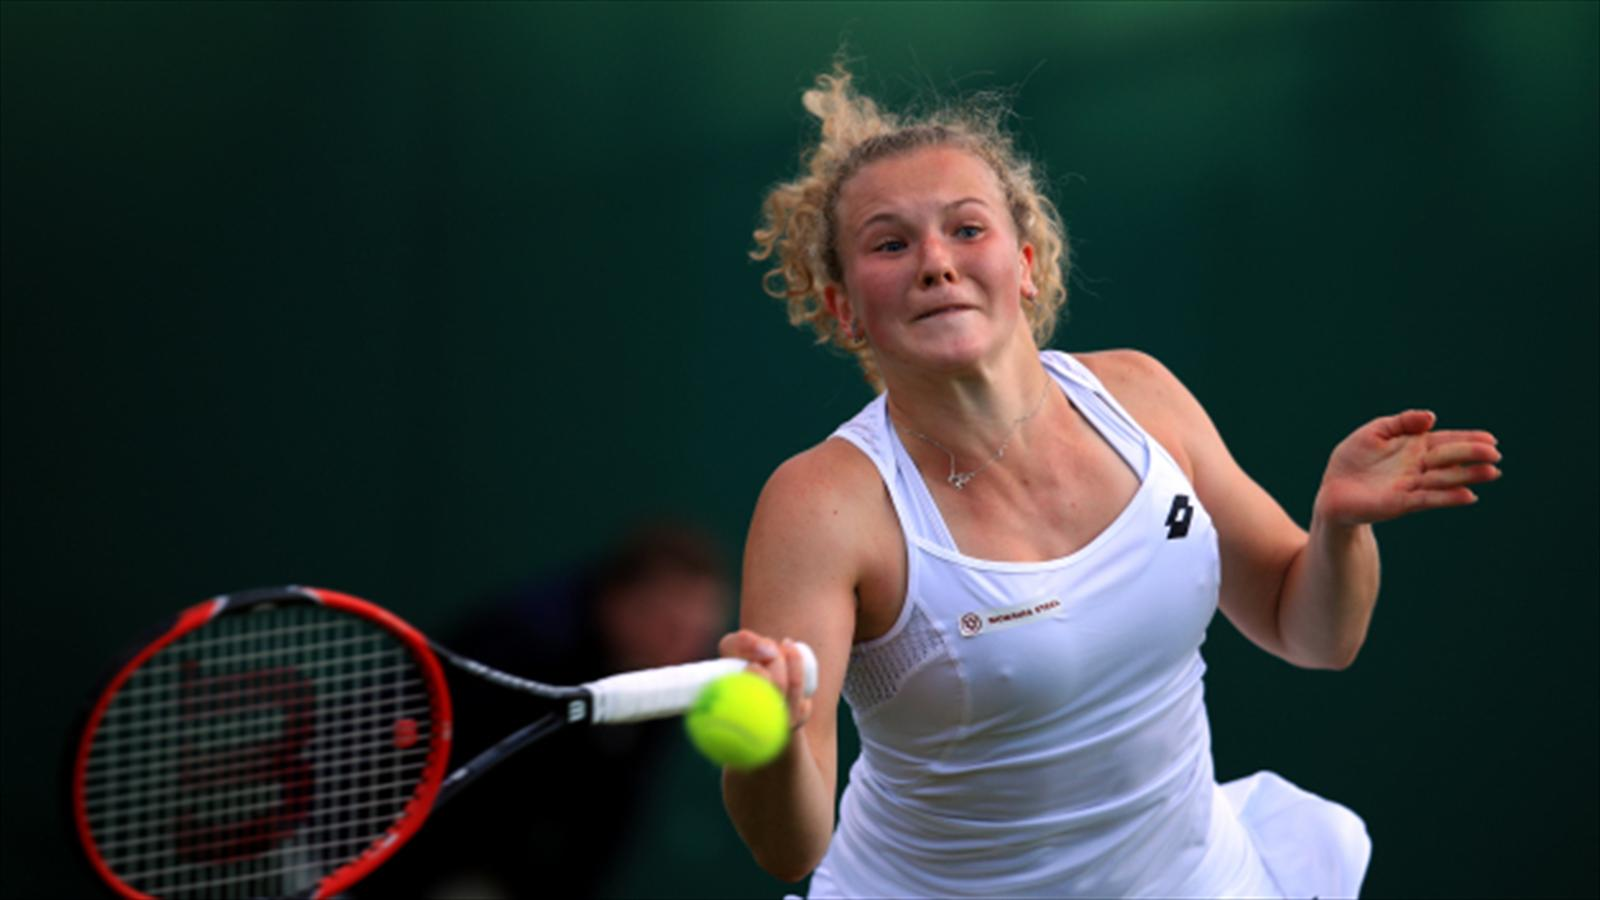 Katerina Siniakova through to final - Tennis - Eurosport